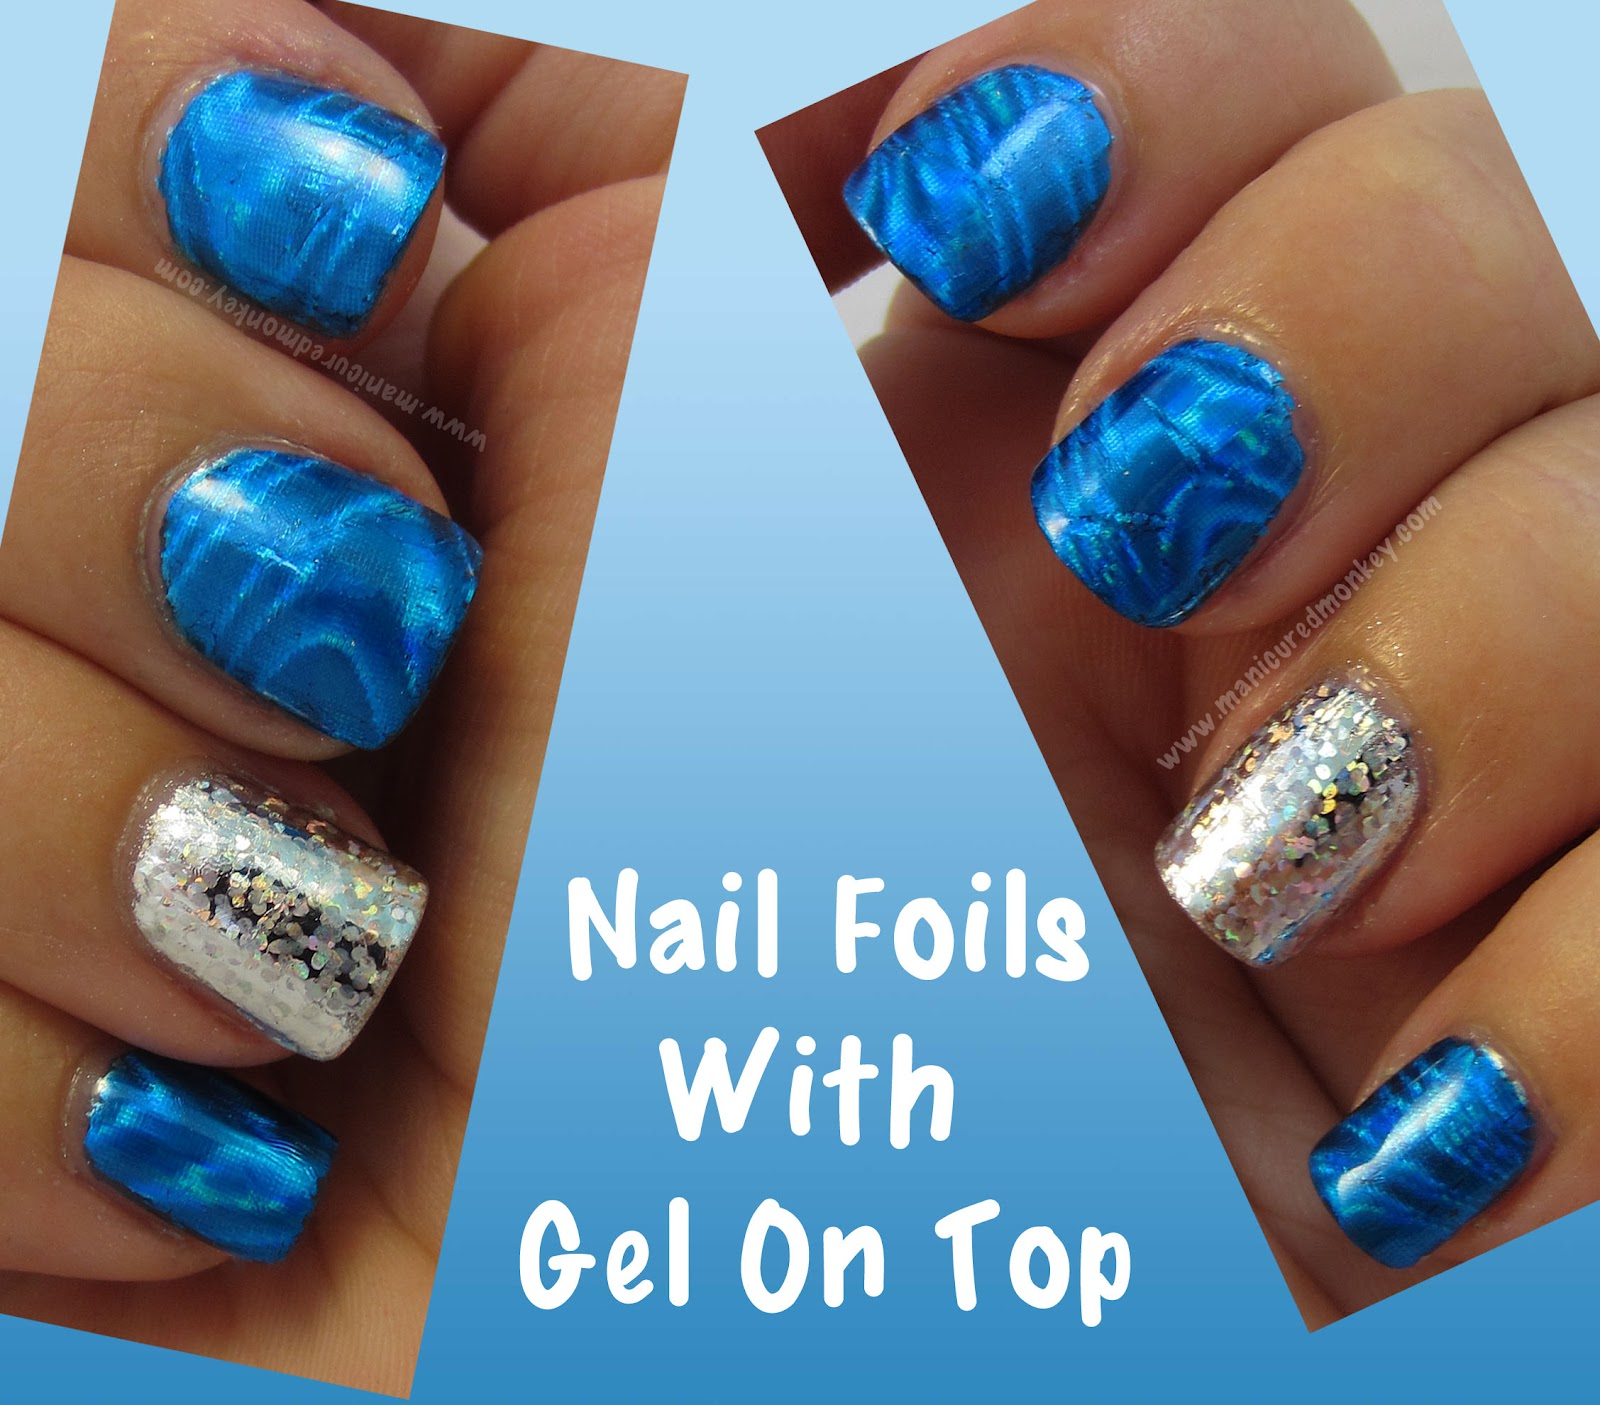 The Manicured Monkey: Nail Foils with Gel